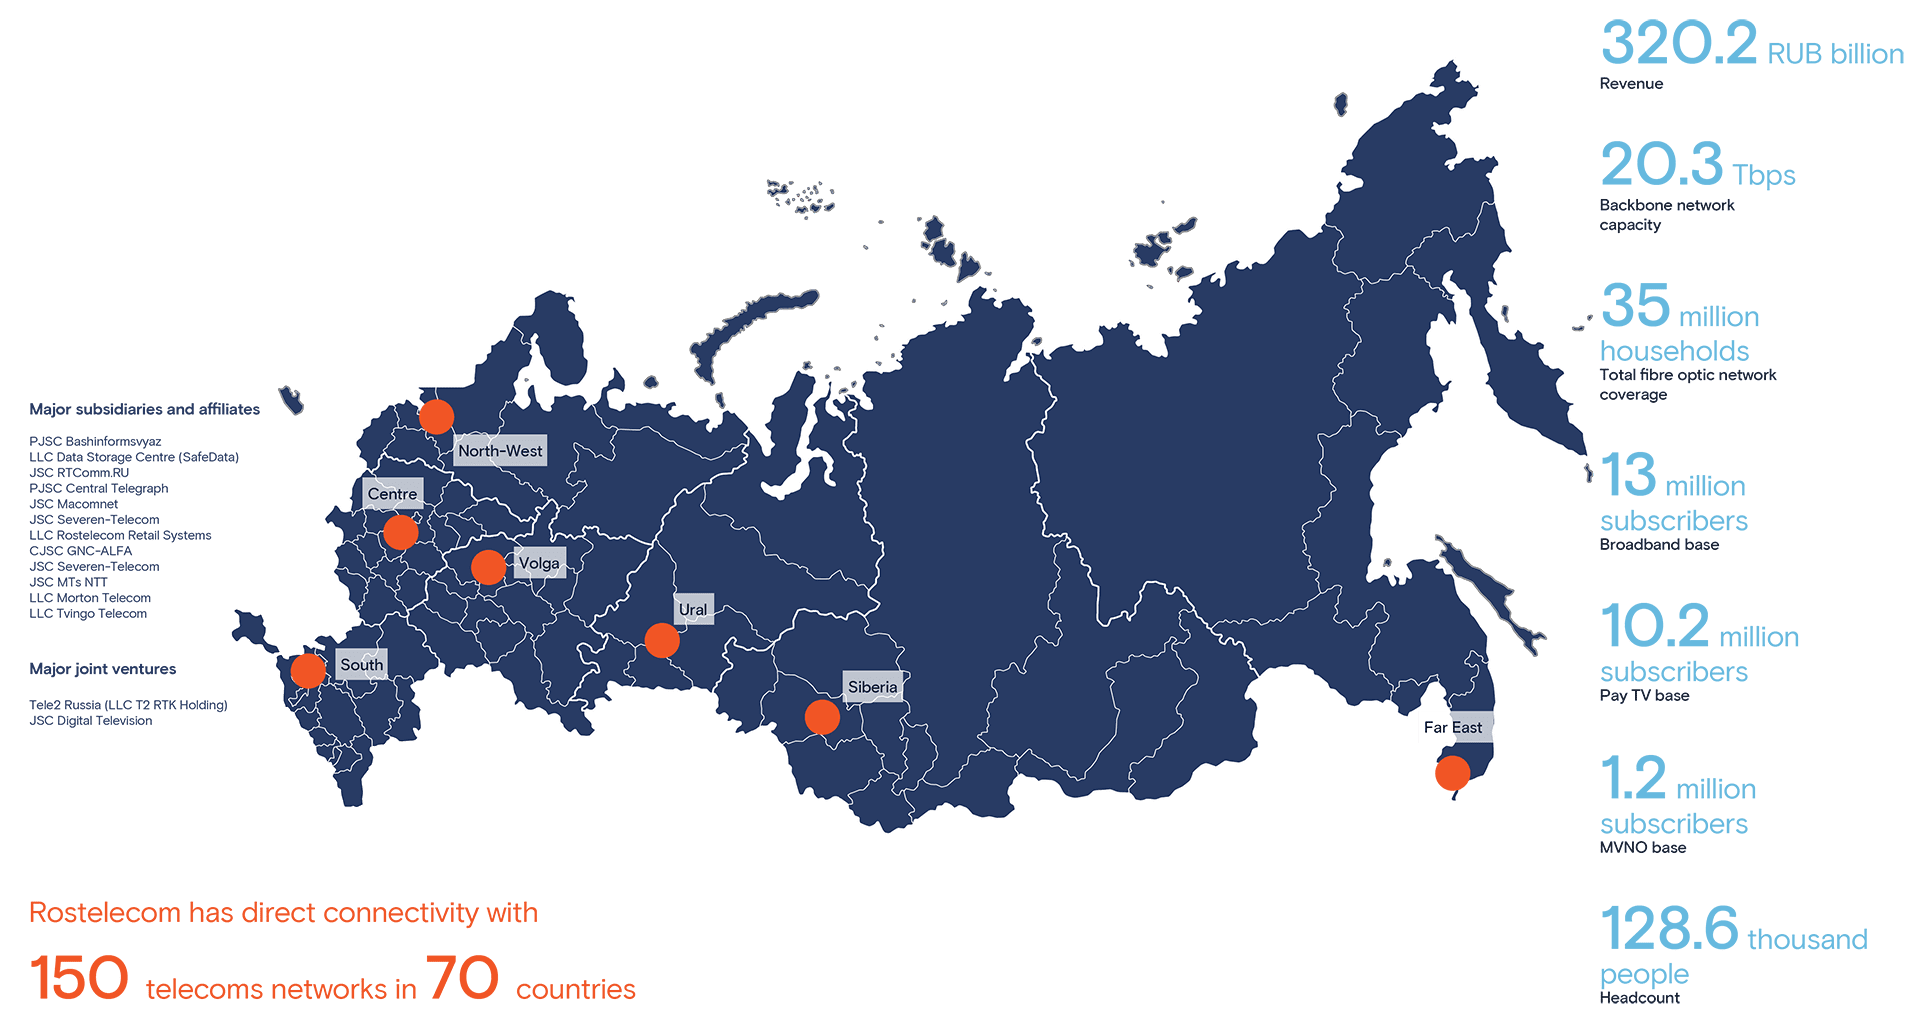 Rostelecom's Structure and Geography of Operations